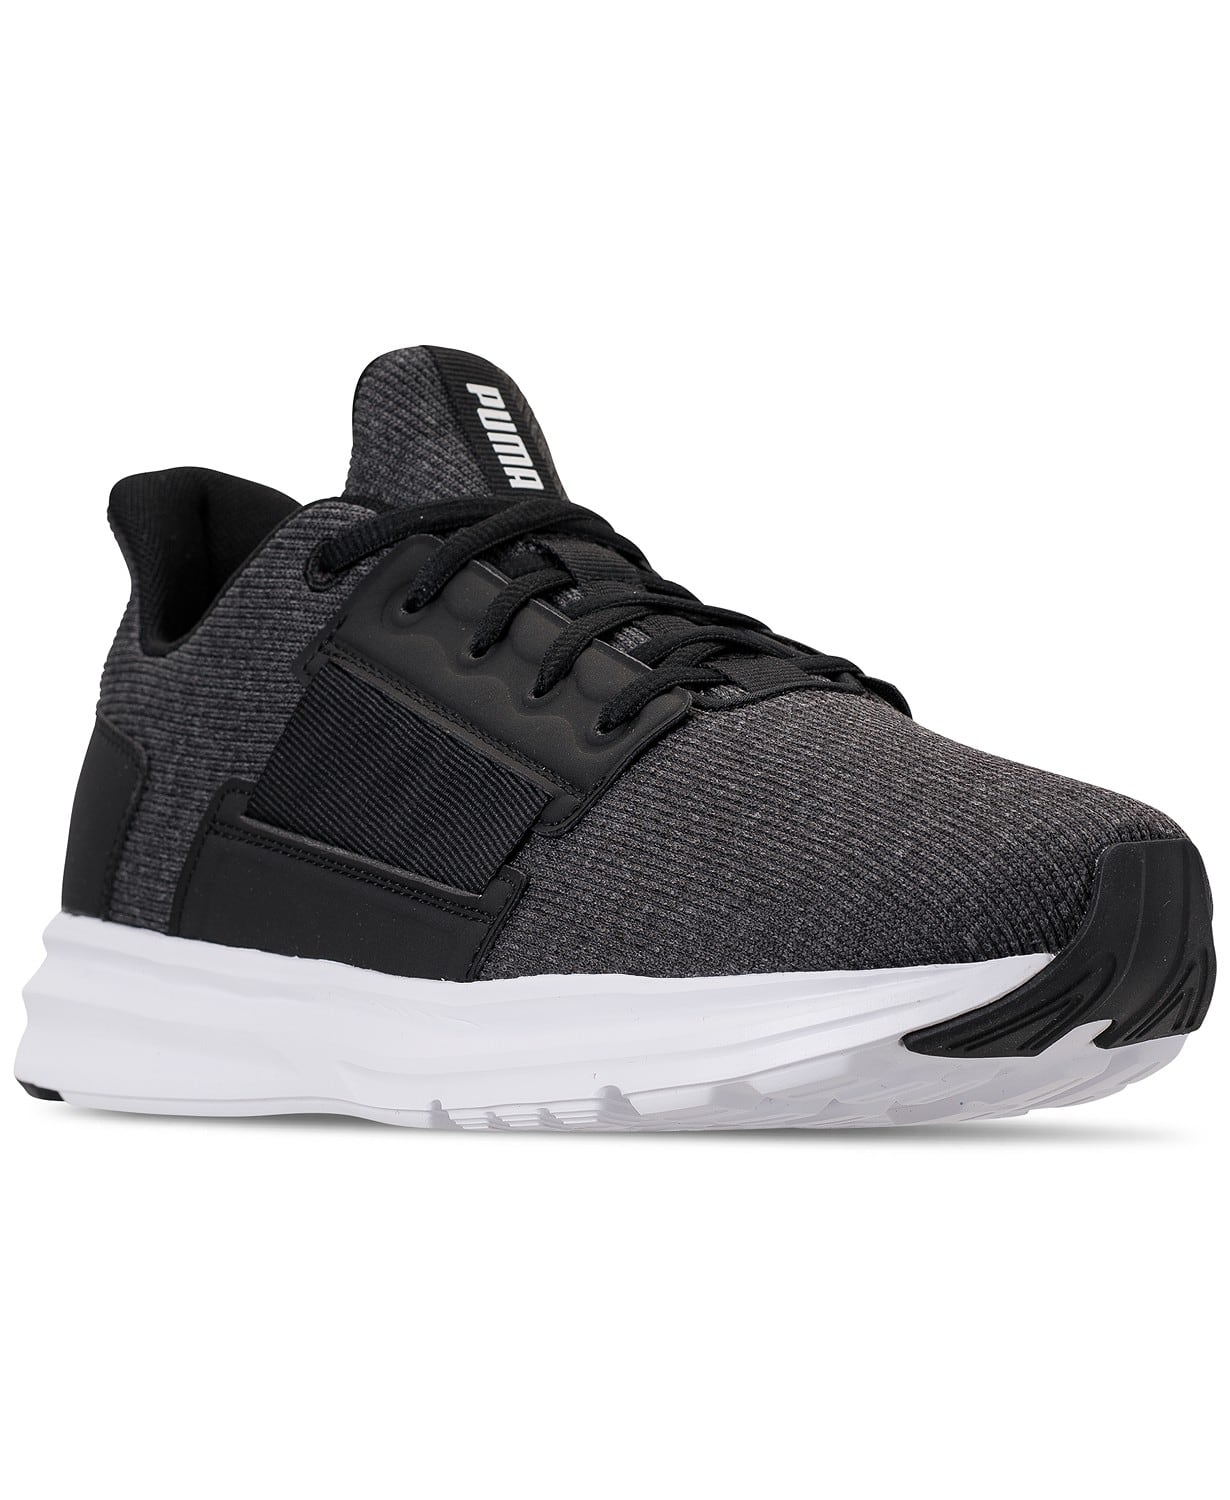 PUMA Enzo Street Knit Men's Shoes $29.98 + Free Shipping